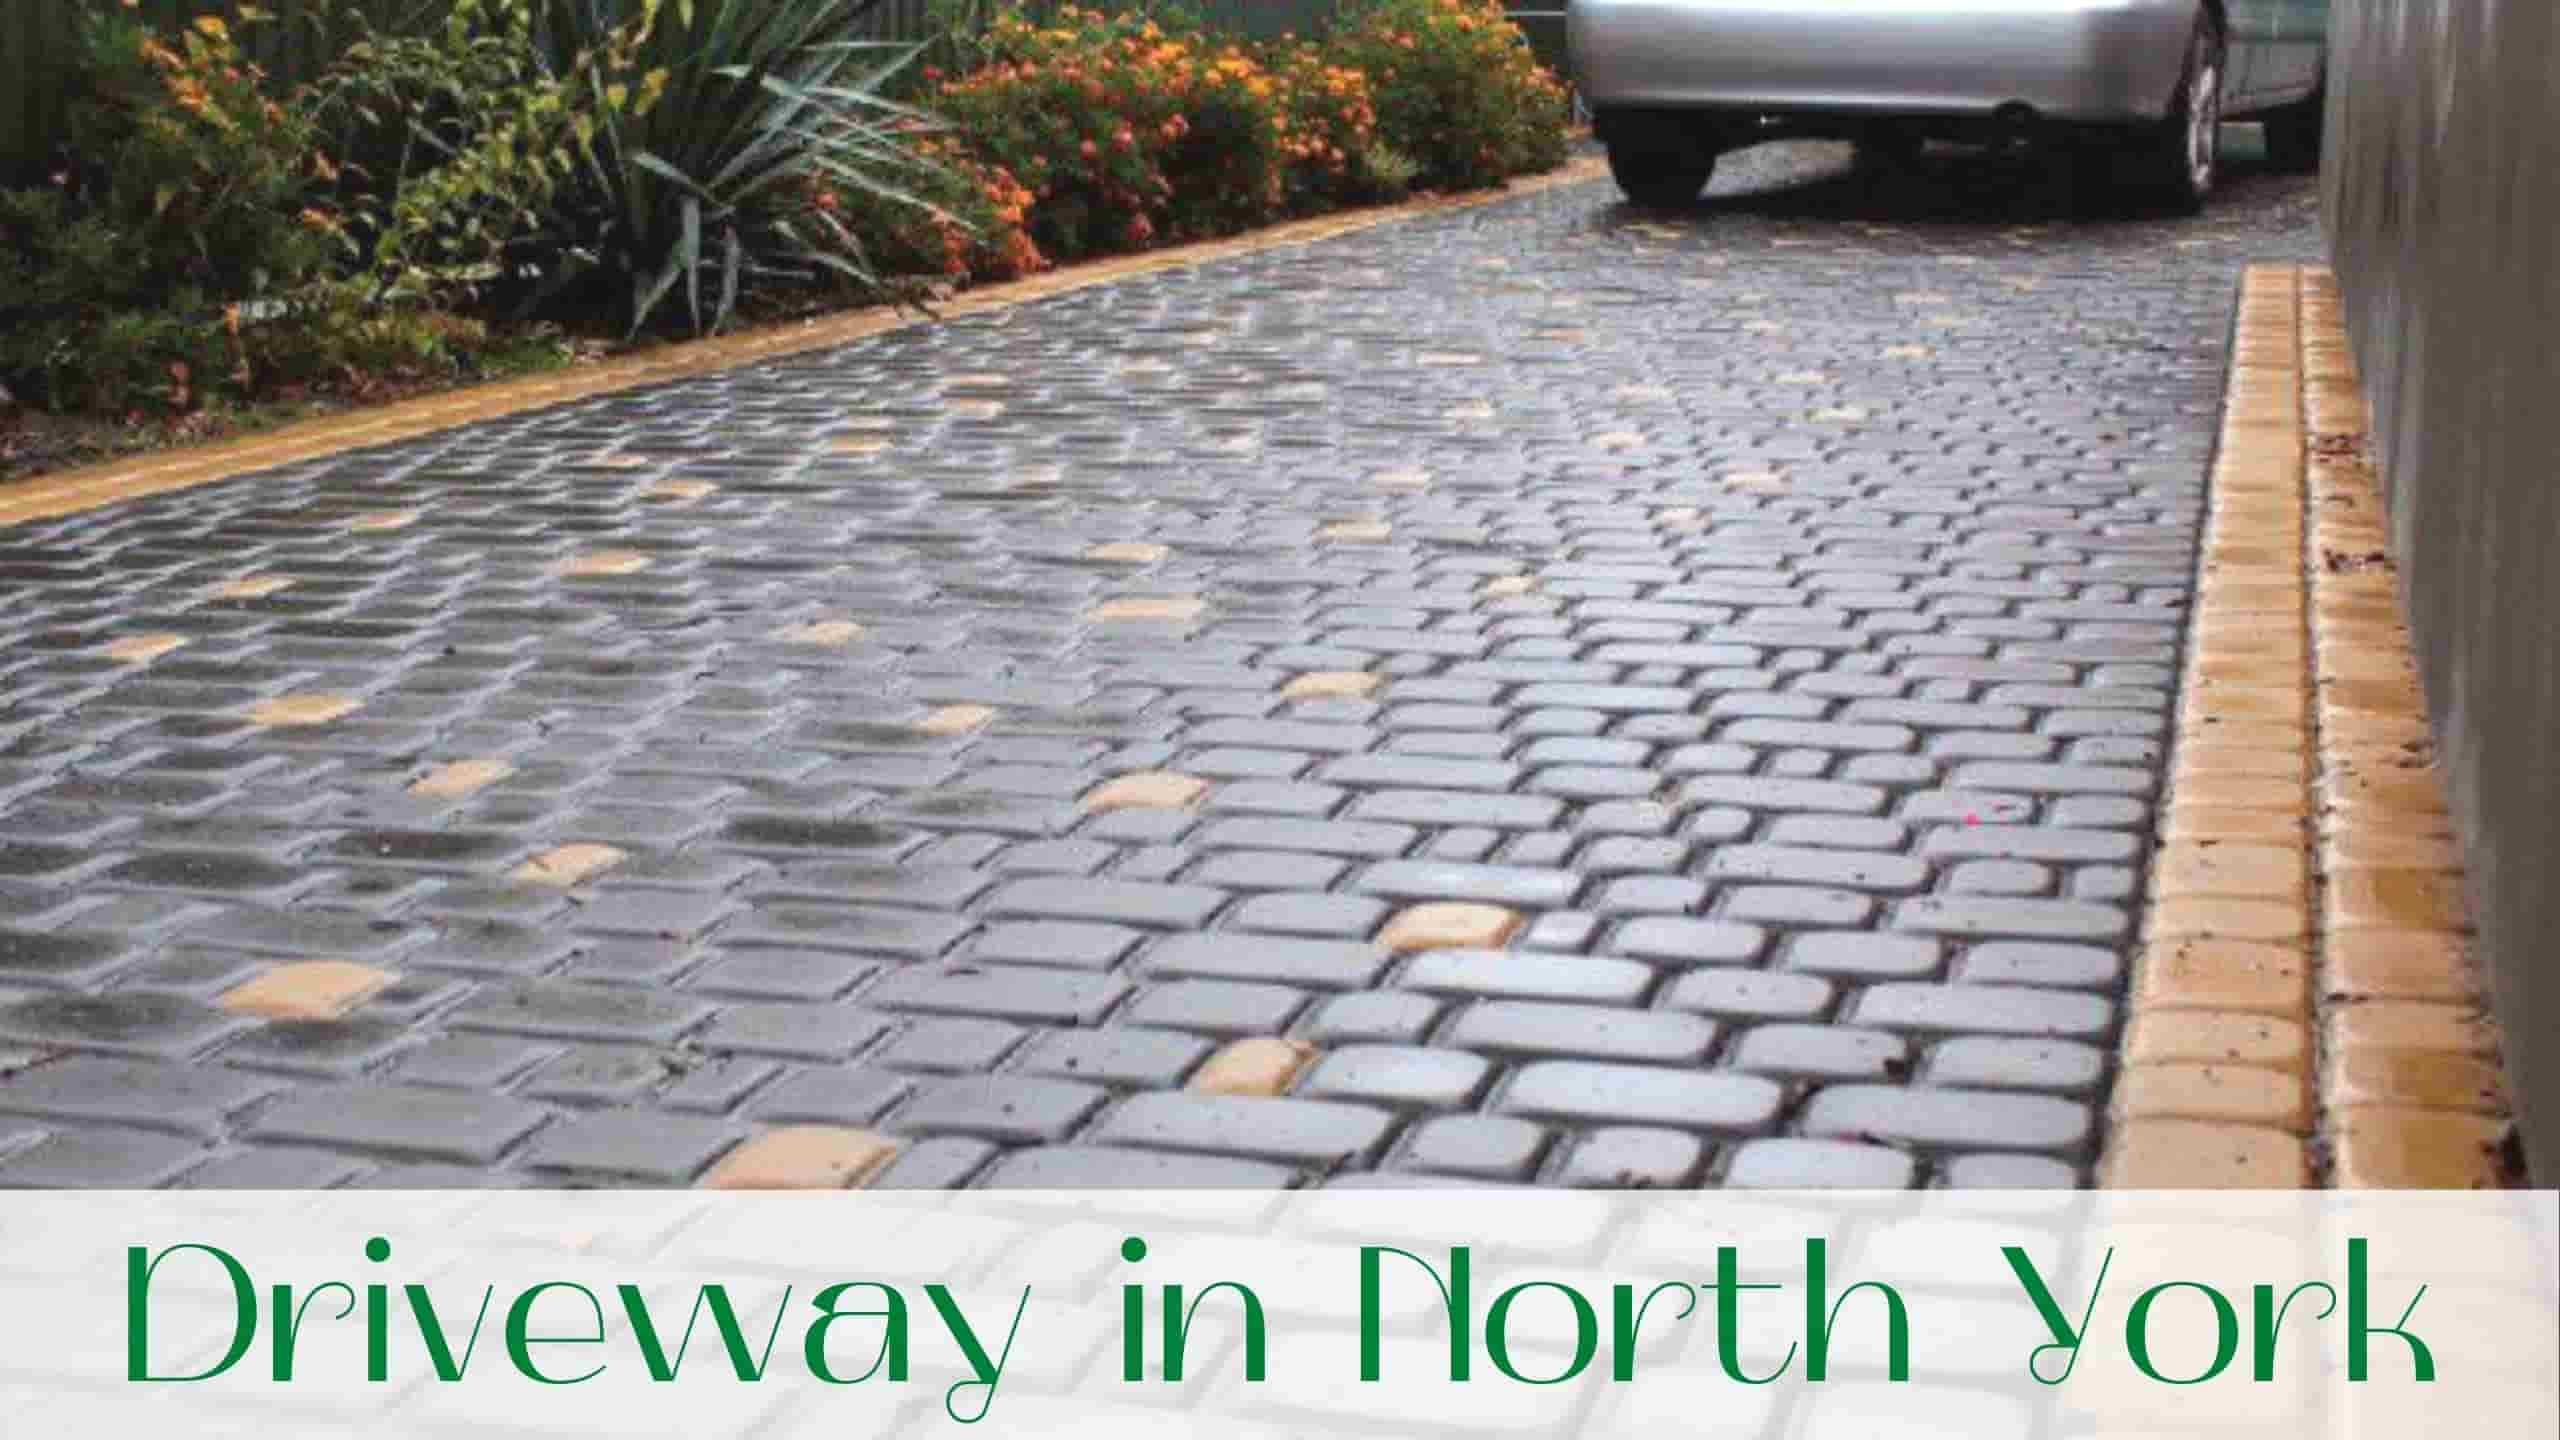 image-driveway-in-north-york